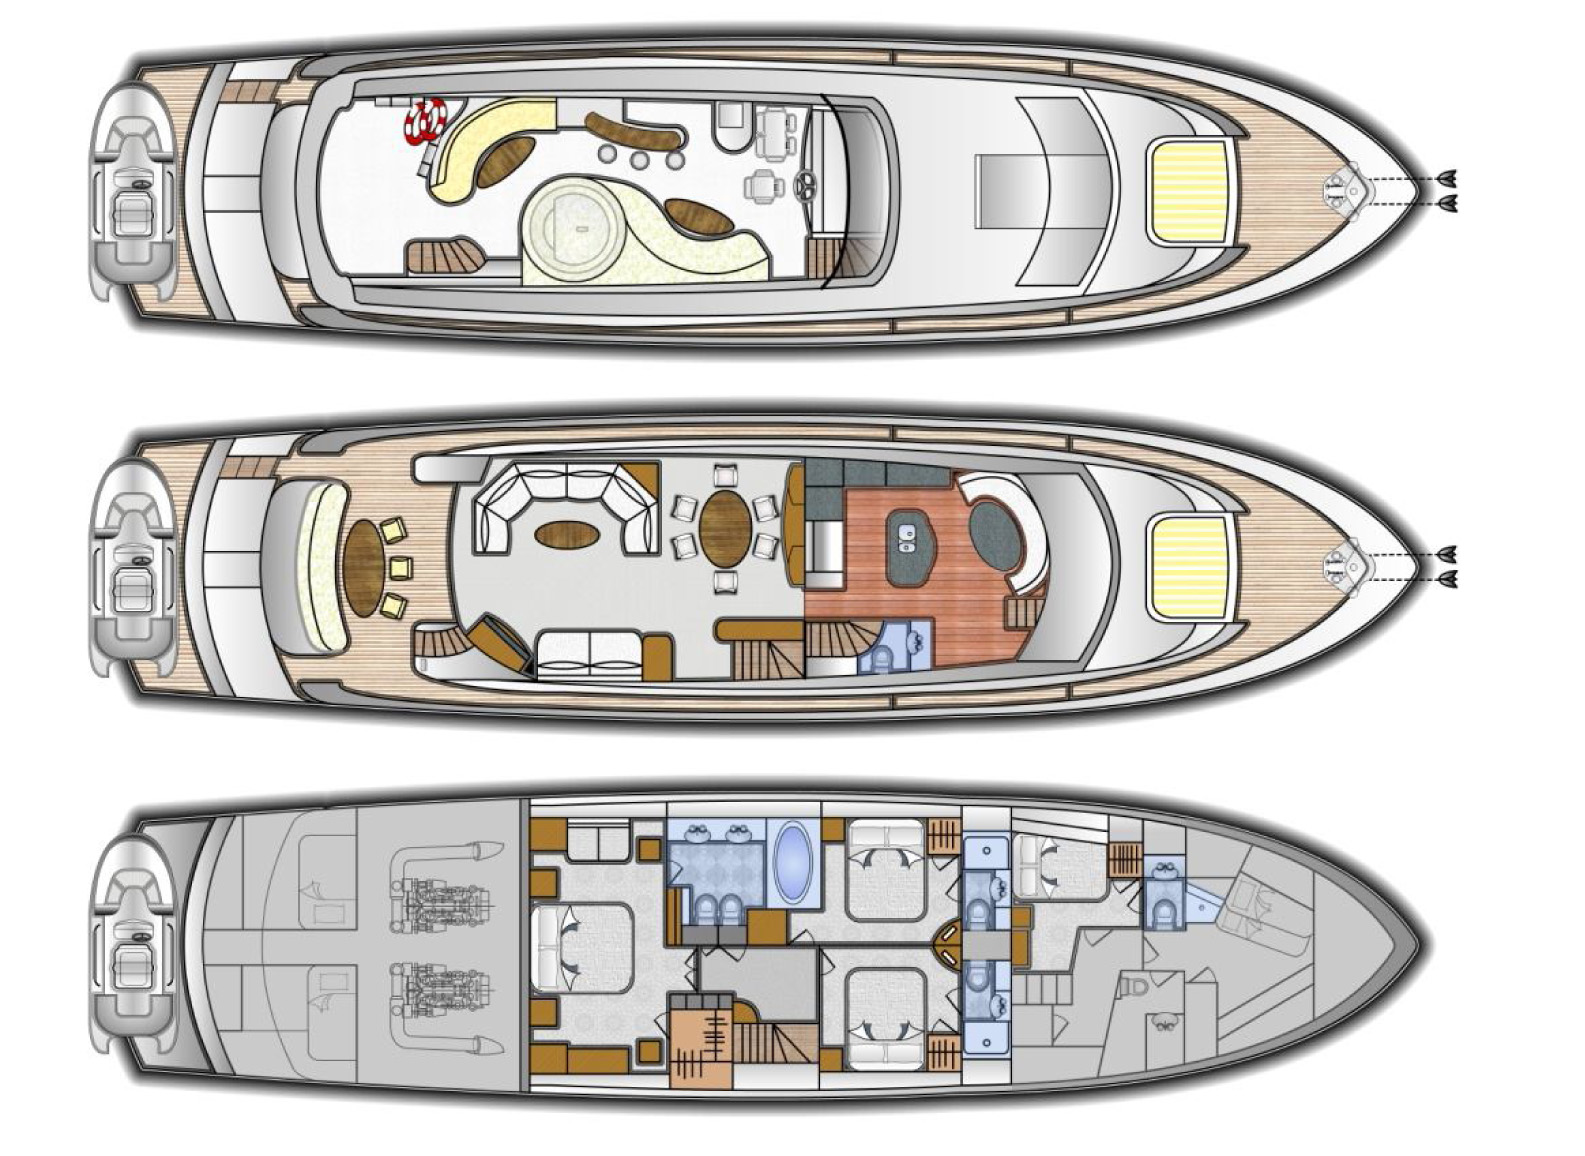 Reeges dream yacht charter details lazzara charterworld for The world deck plans